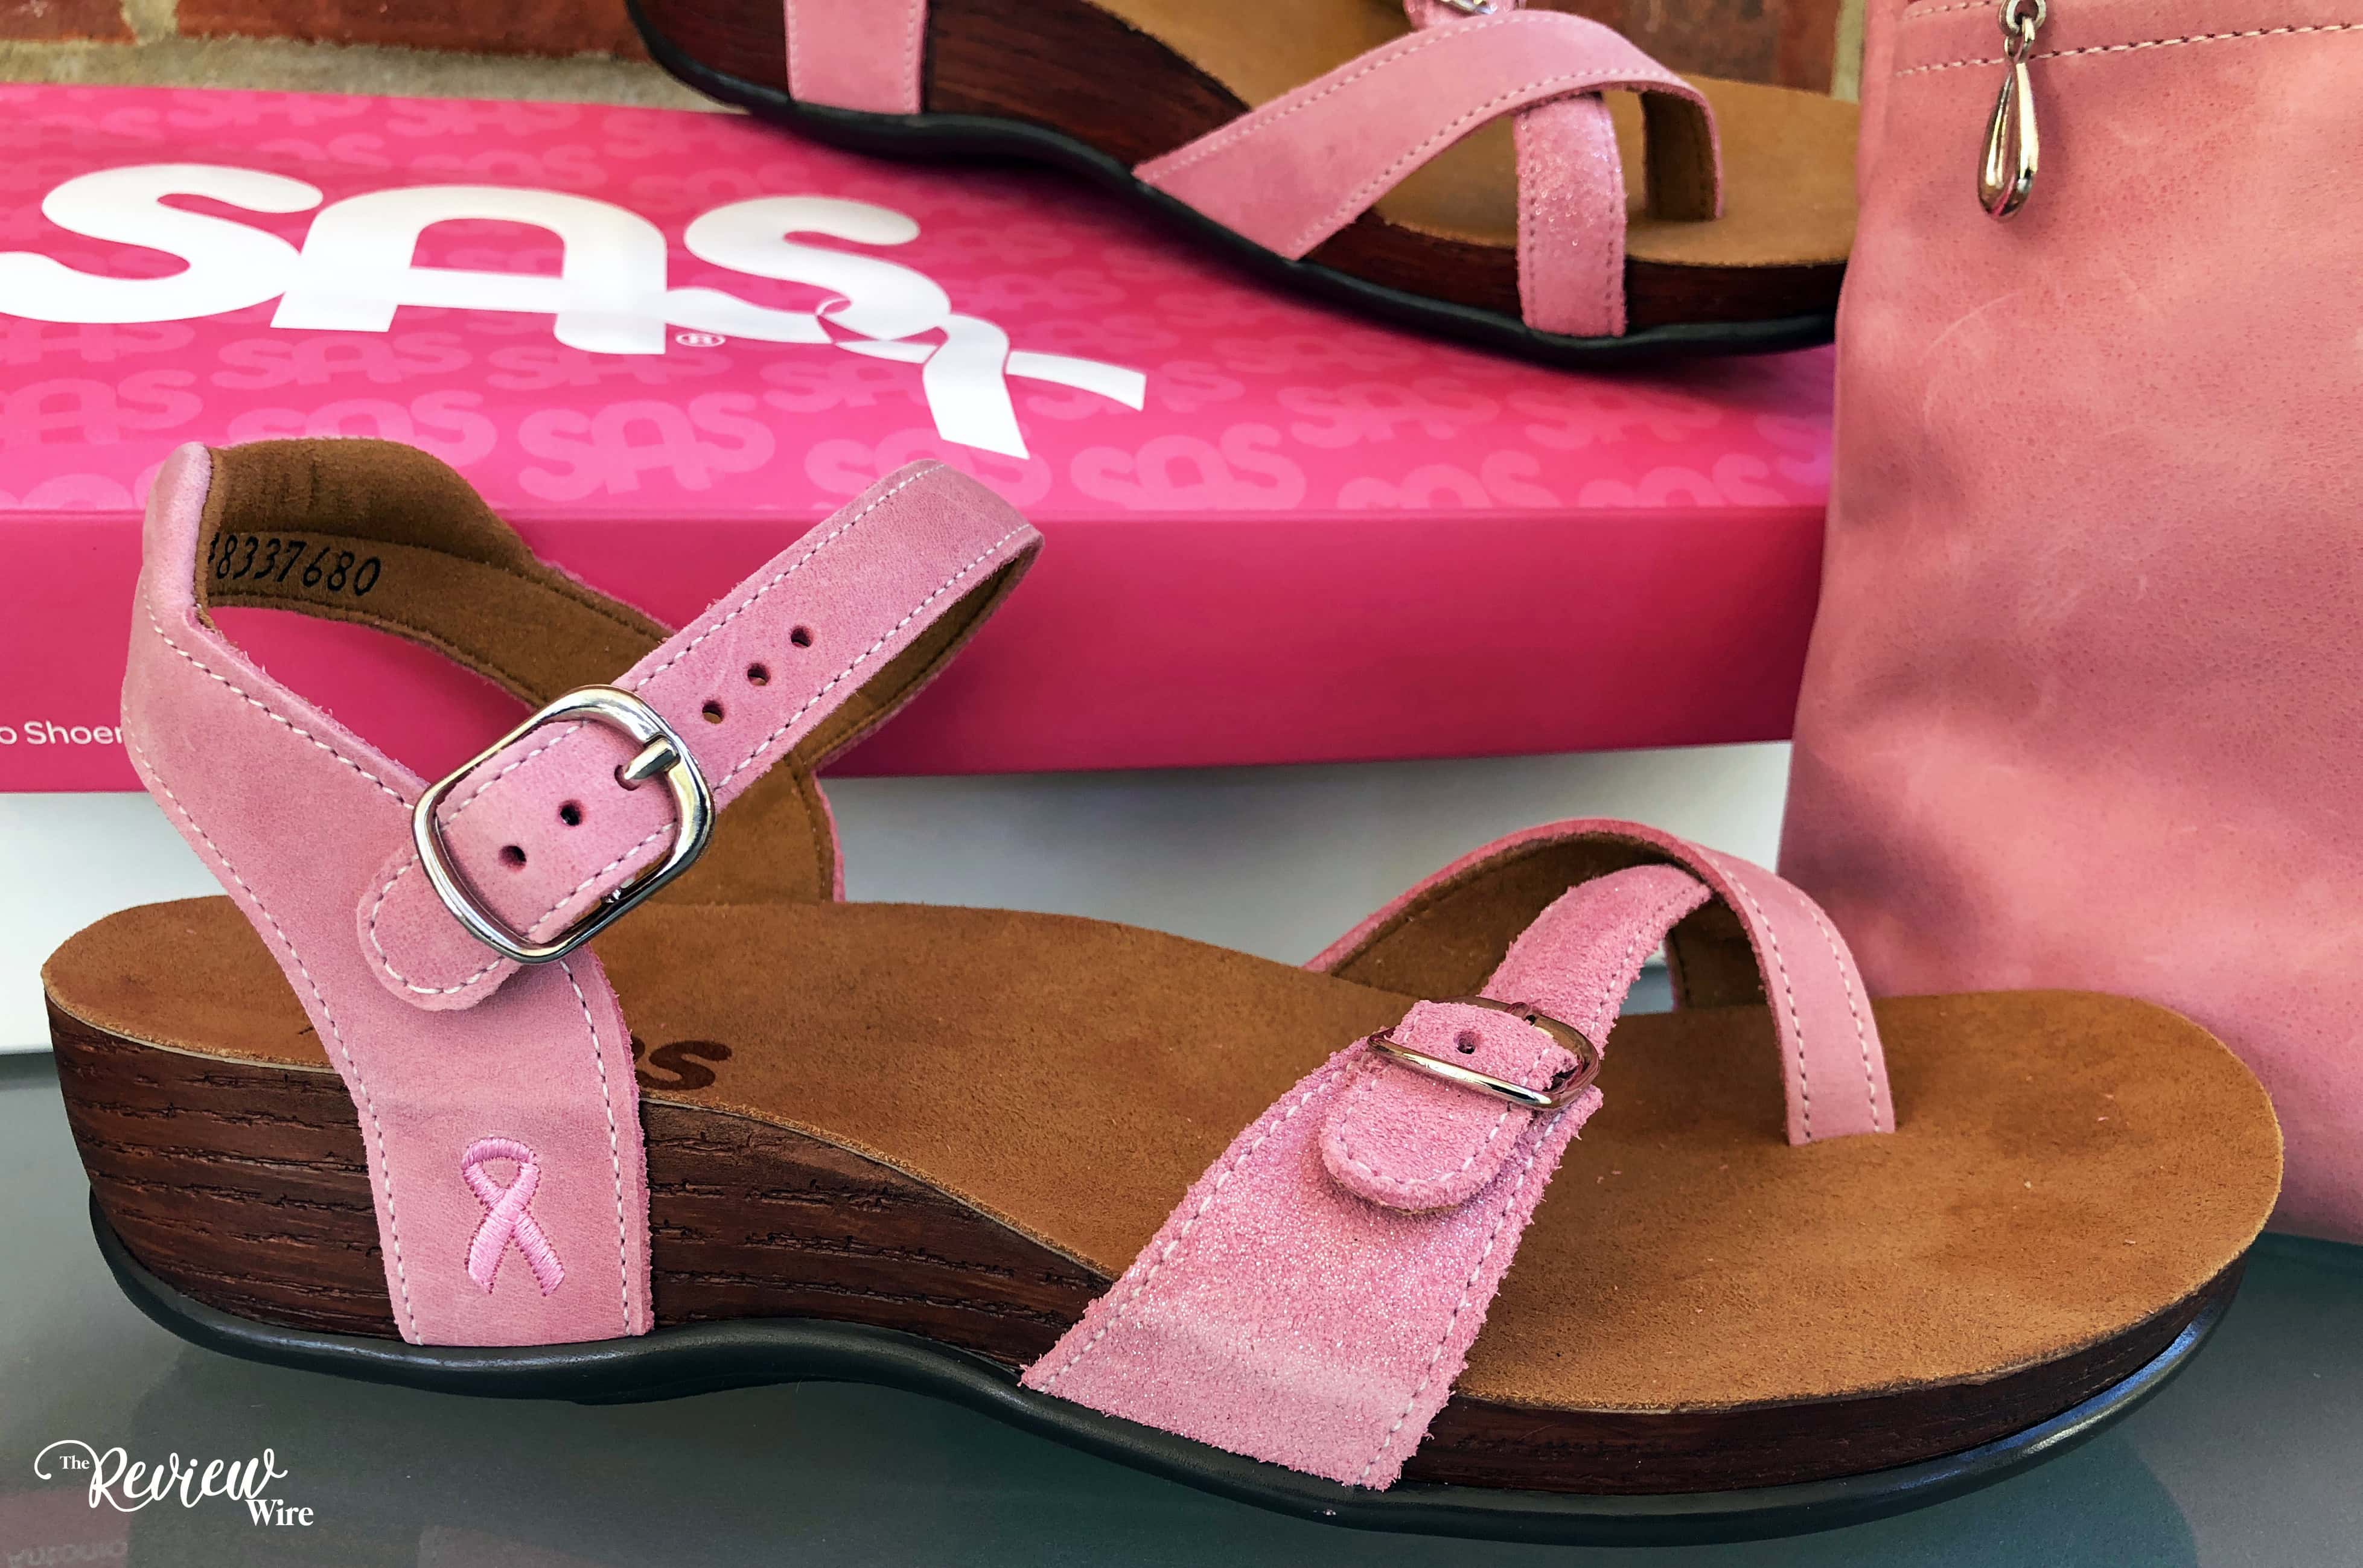 The Review Wire: SAS Shoes Pampa Breast Cancer Awareness Sandal